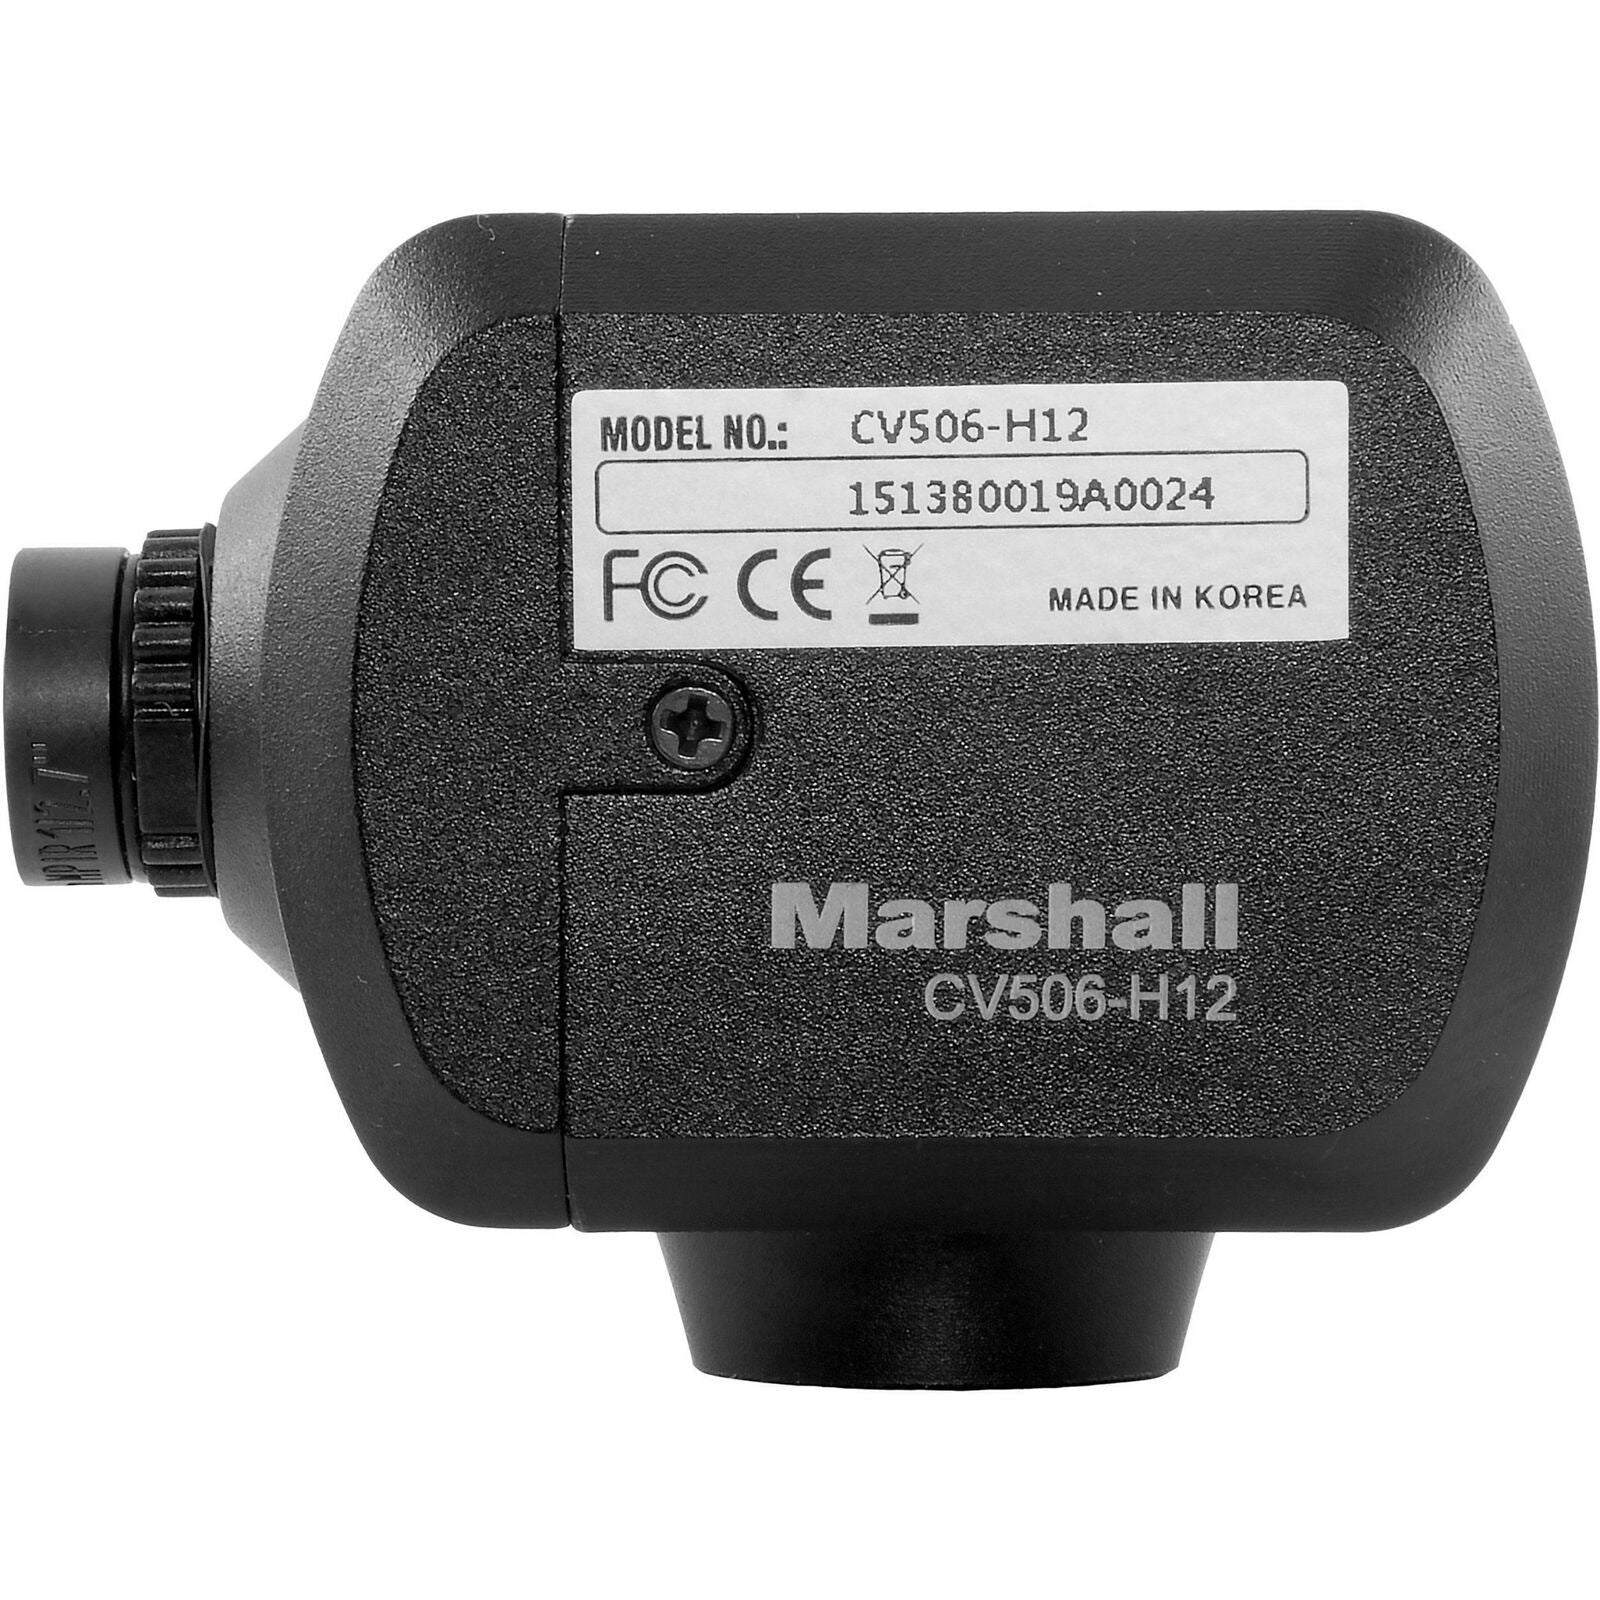 Marshall Electronics CV506-H12 Miniature High-Speed Broadcast Compatible Camera - Studio AMG